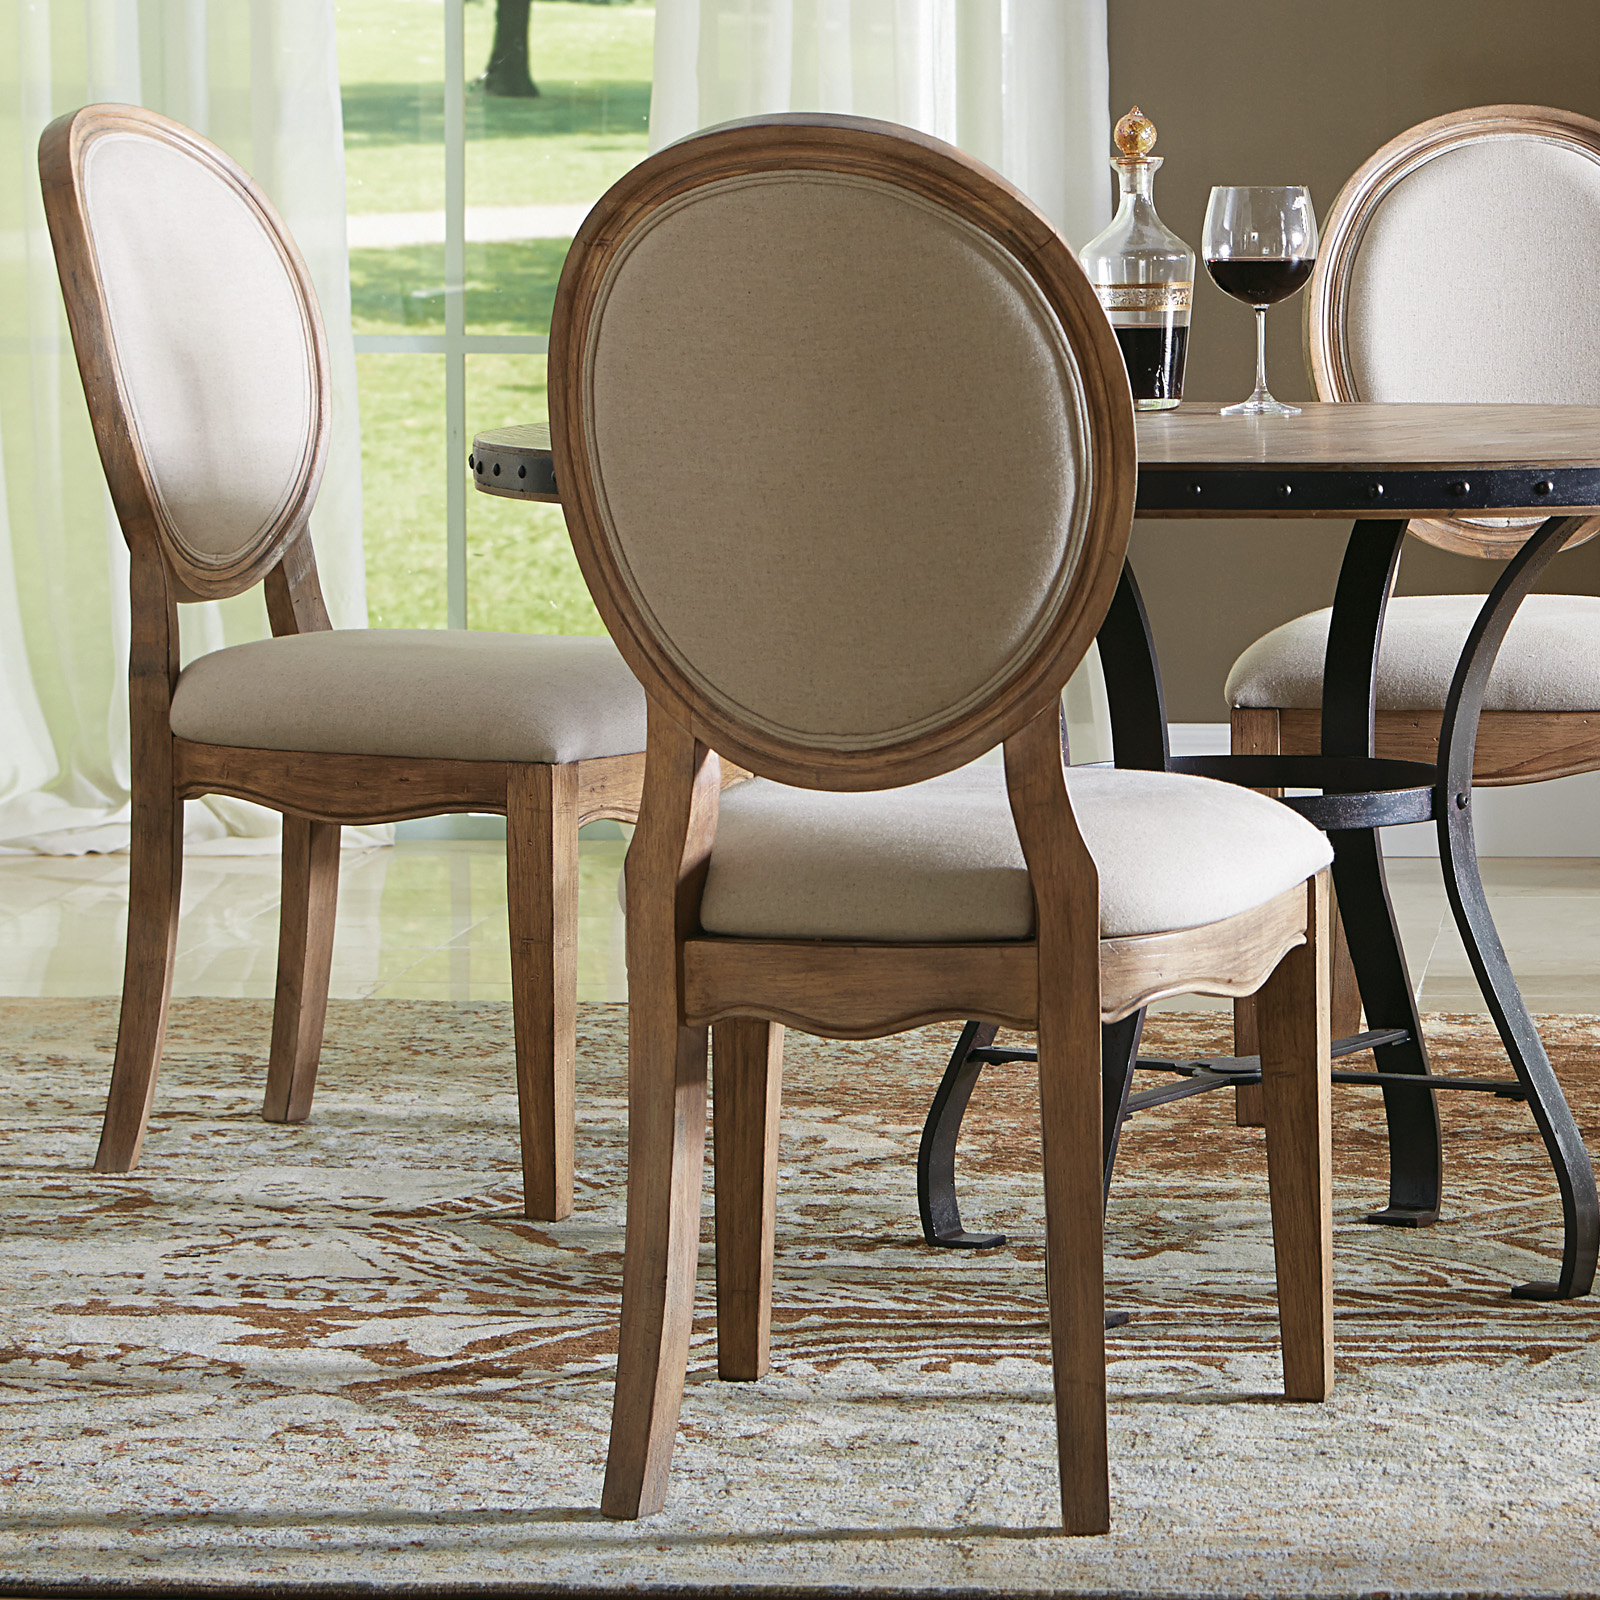 Riverside Sherborne Oval Back Upholstered Side Dining Chairs Set